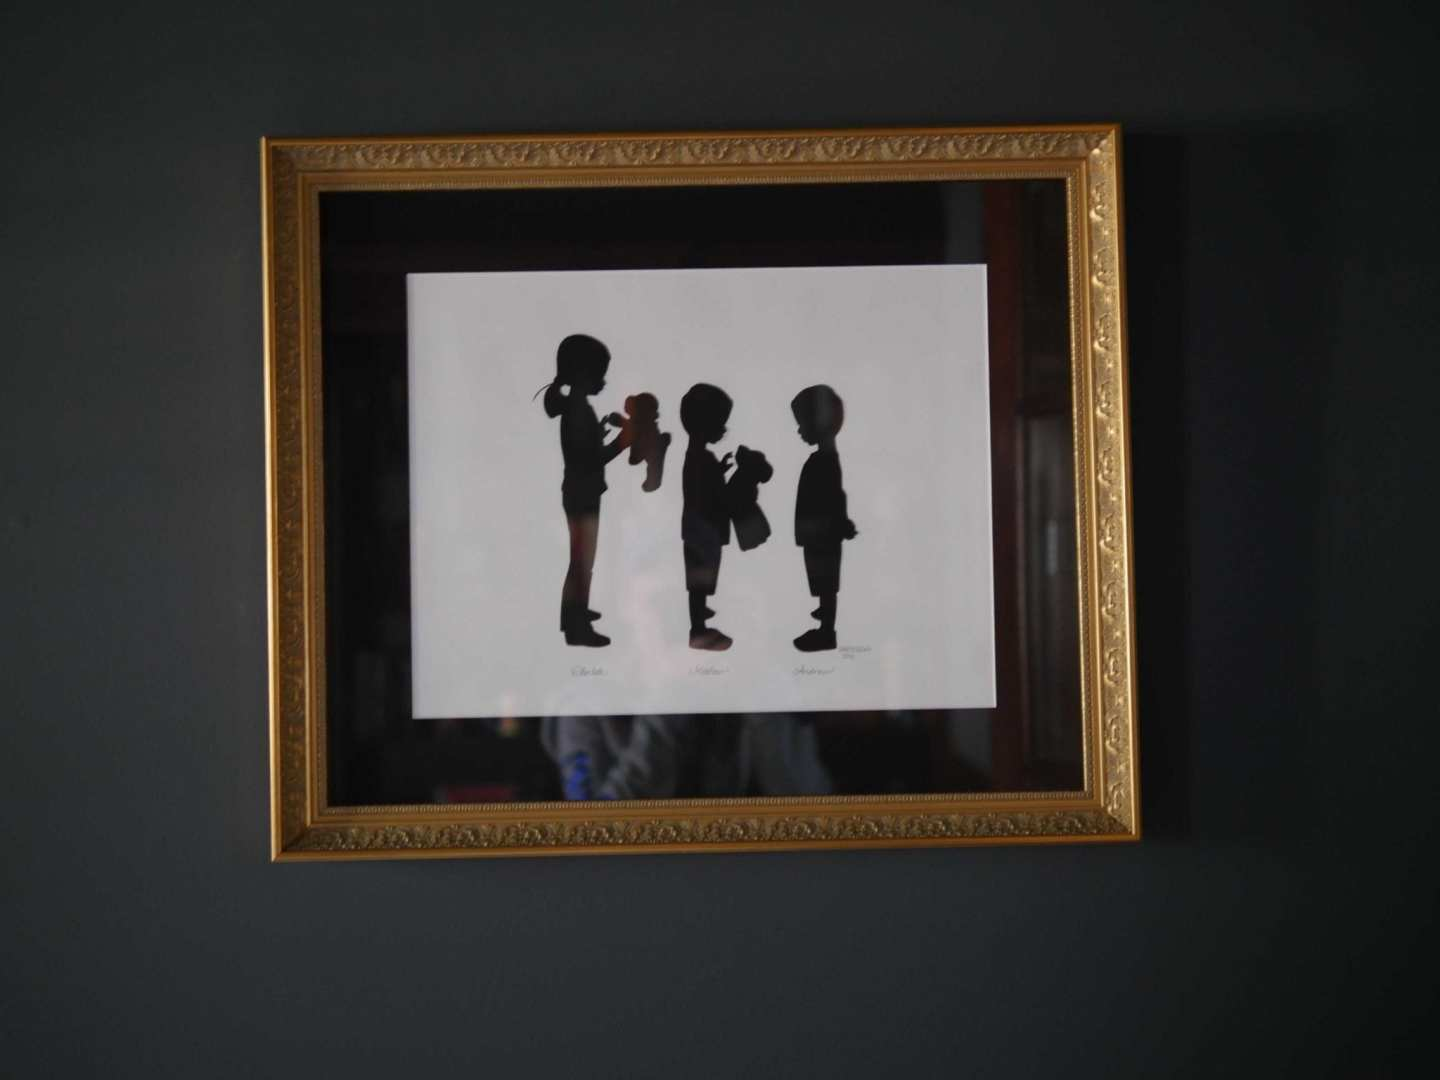 Cardboard silhouettes. Unique and pretty things to hang on a wall!